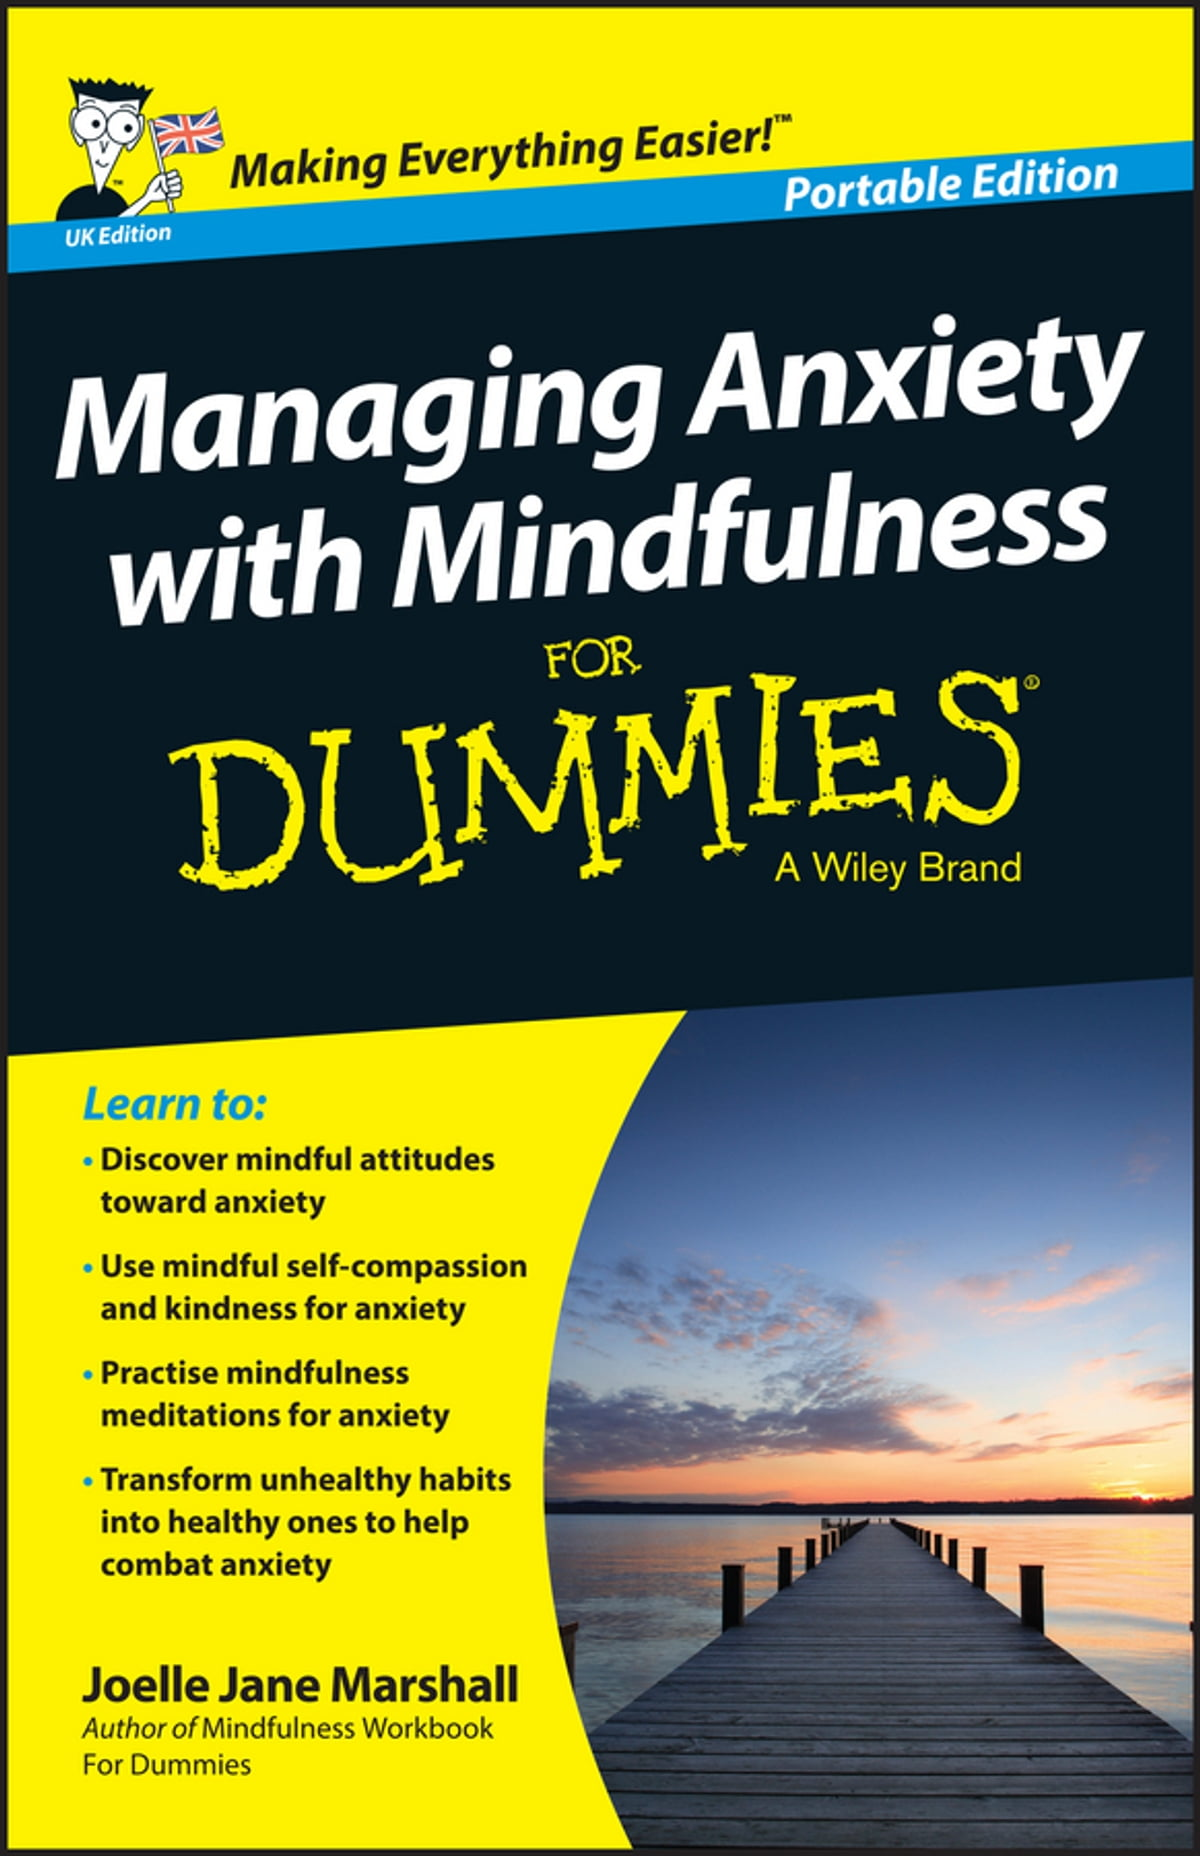 Managing anxiety with mindfulness for dummies ebook by joelle jane managing anxiety with mindfulness for dummies ebook by joelle jane marshall 9781118972571 rakuten kobo fandeluxe PDF